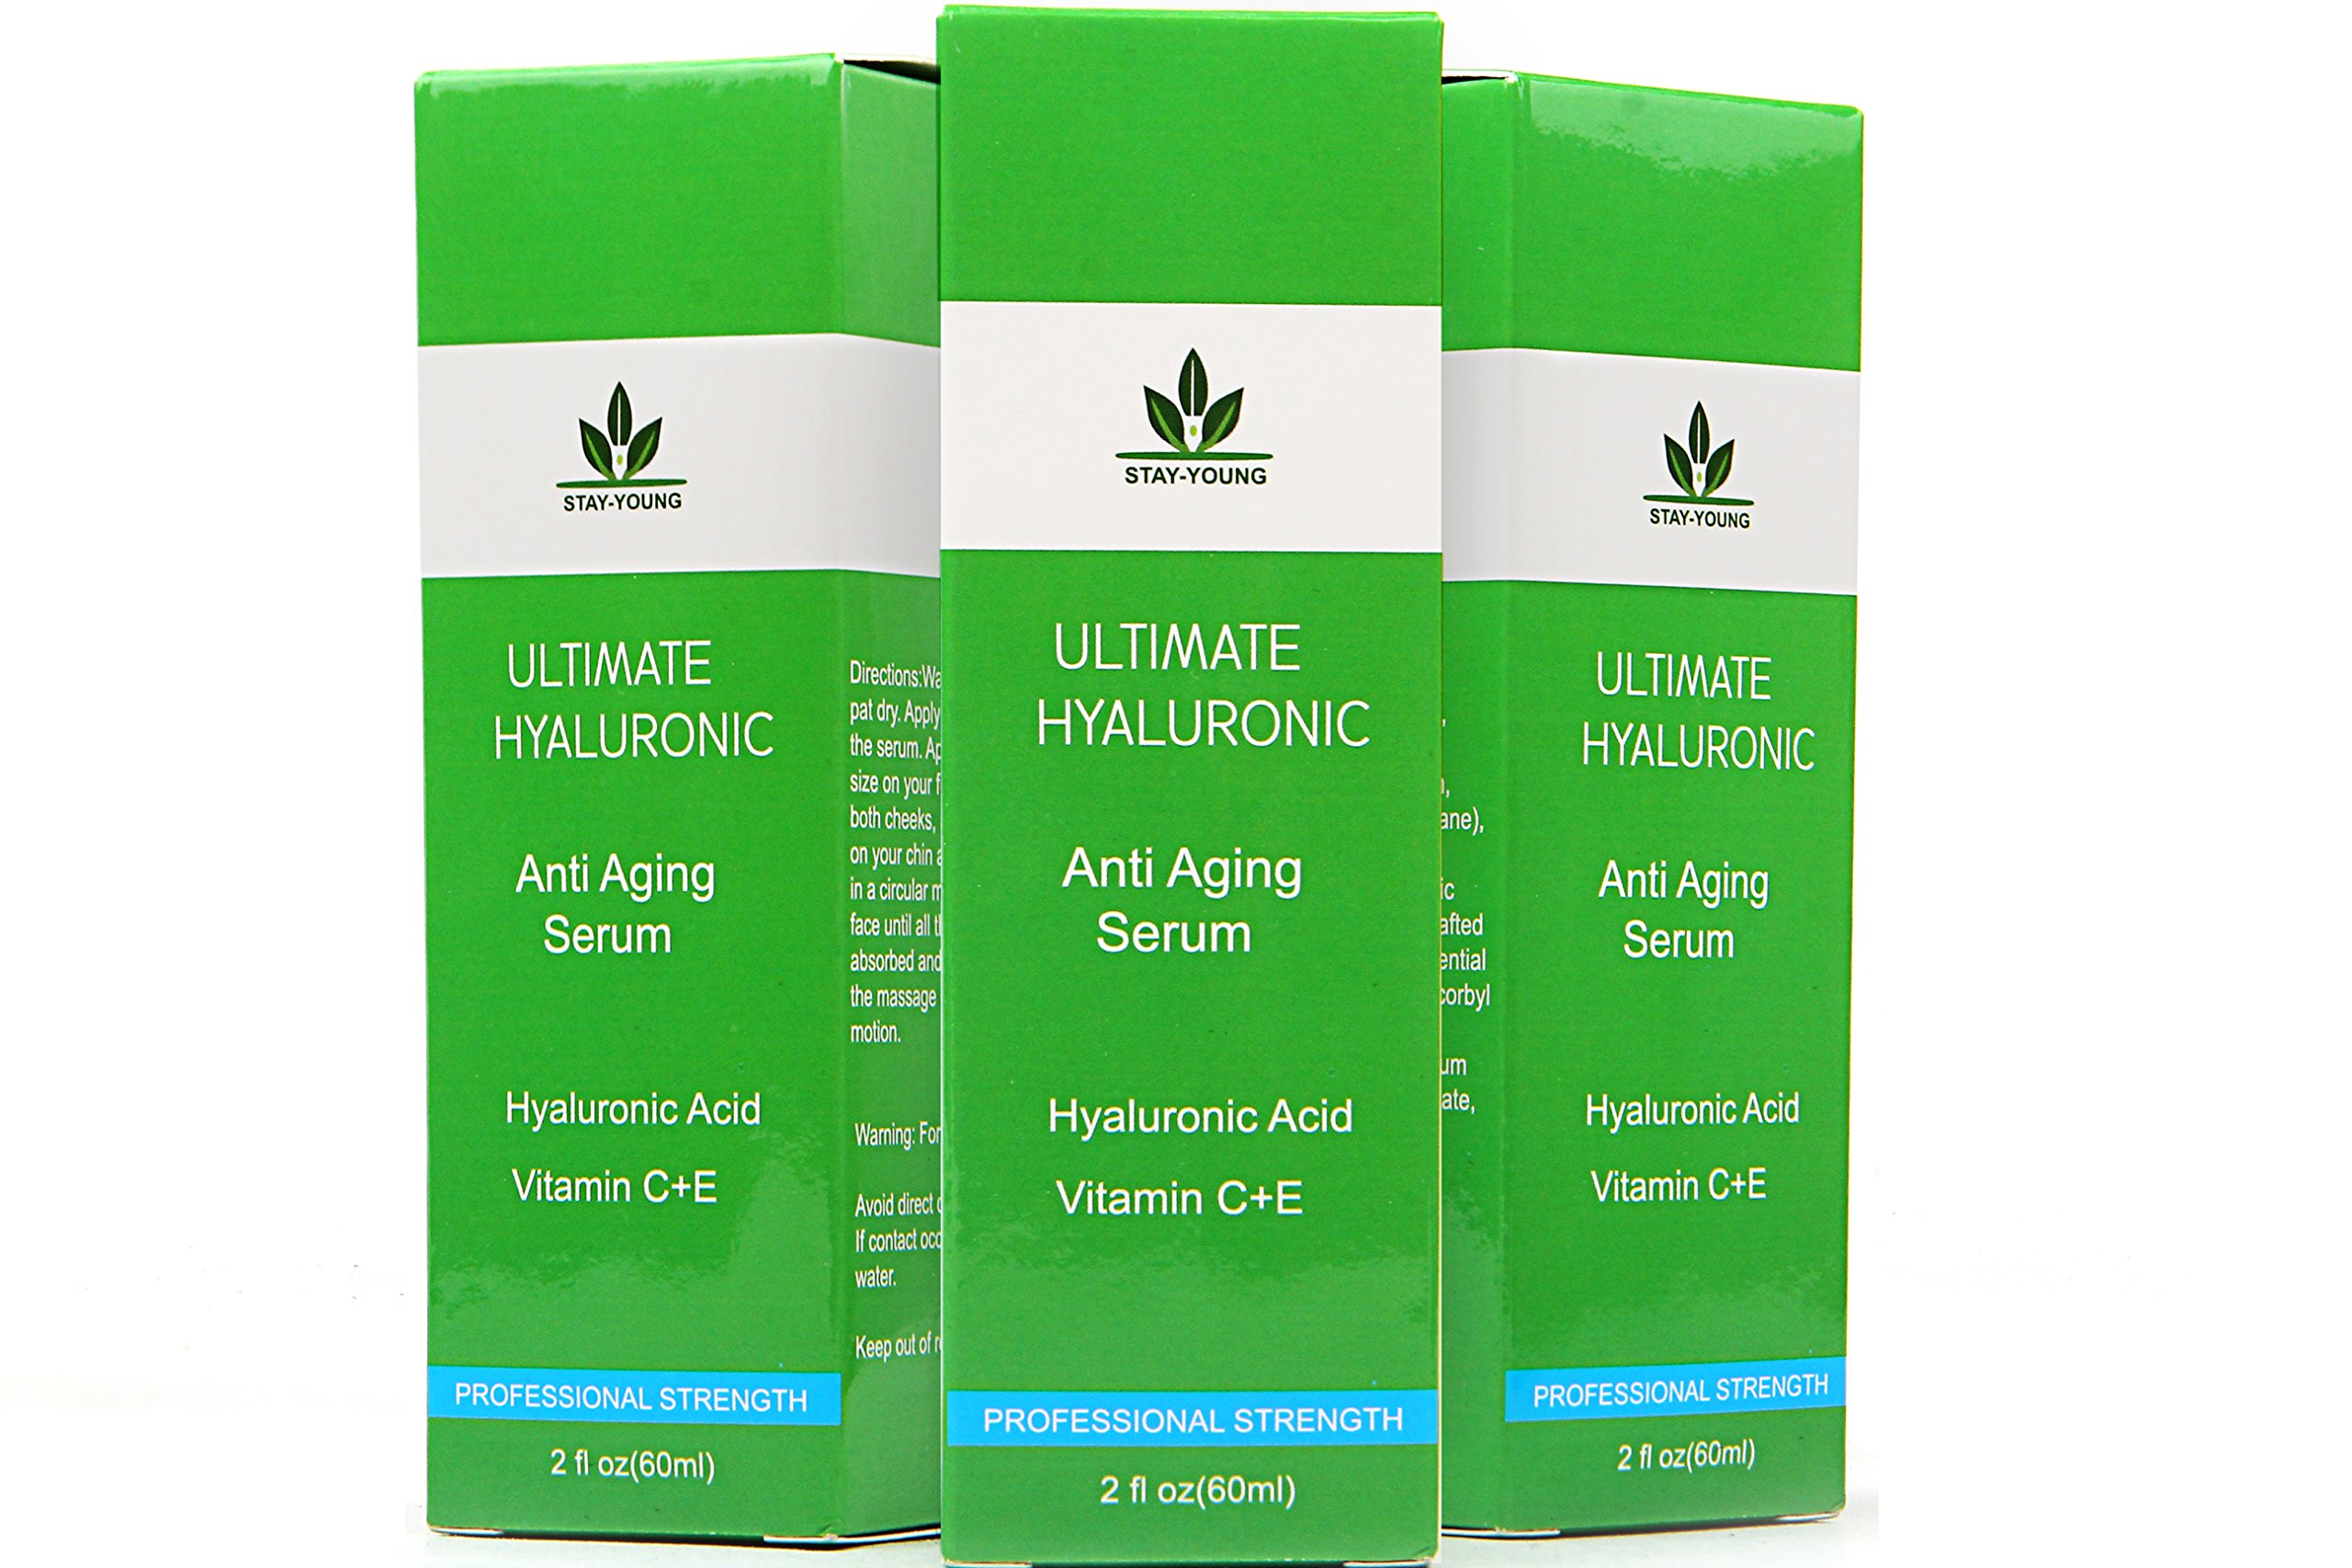 Hyaluronic Acid Face Serum - 60ML-DOUBLE SIZE BOTTLE - Jojoba Oil, Green Tea, Aloe Vera, Vitamin E, Vitamin C, Best Anti Ageing & Anti Wrinkle Serum - Organic Serum Hydrates & Brightens Skin, Reduces Dark circles, Fine Lines & Wrinkles, Eye